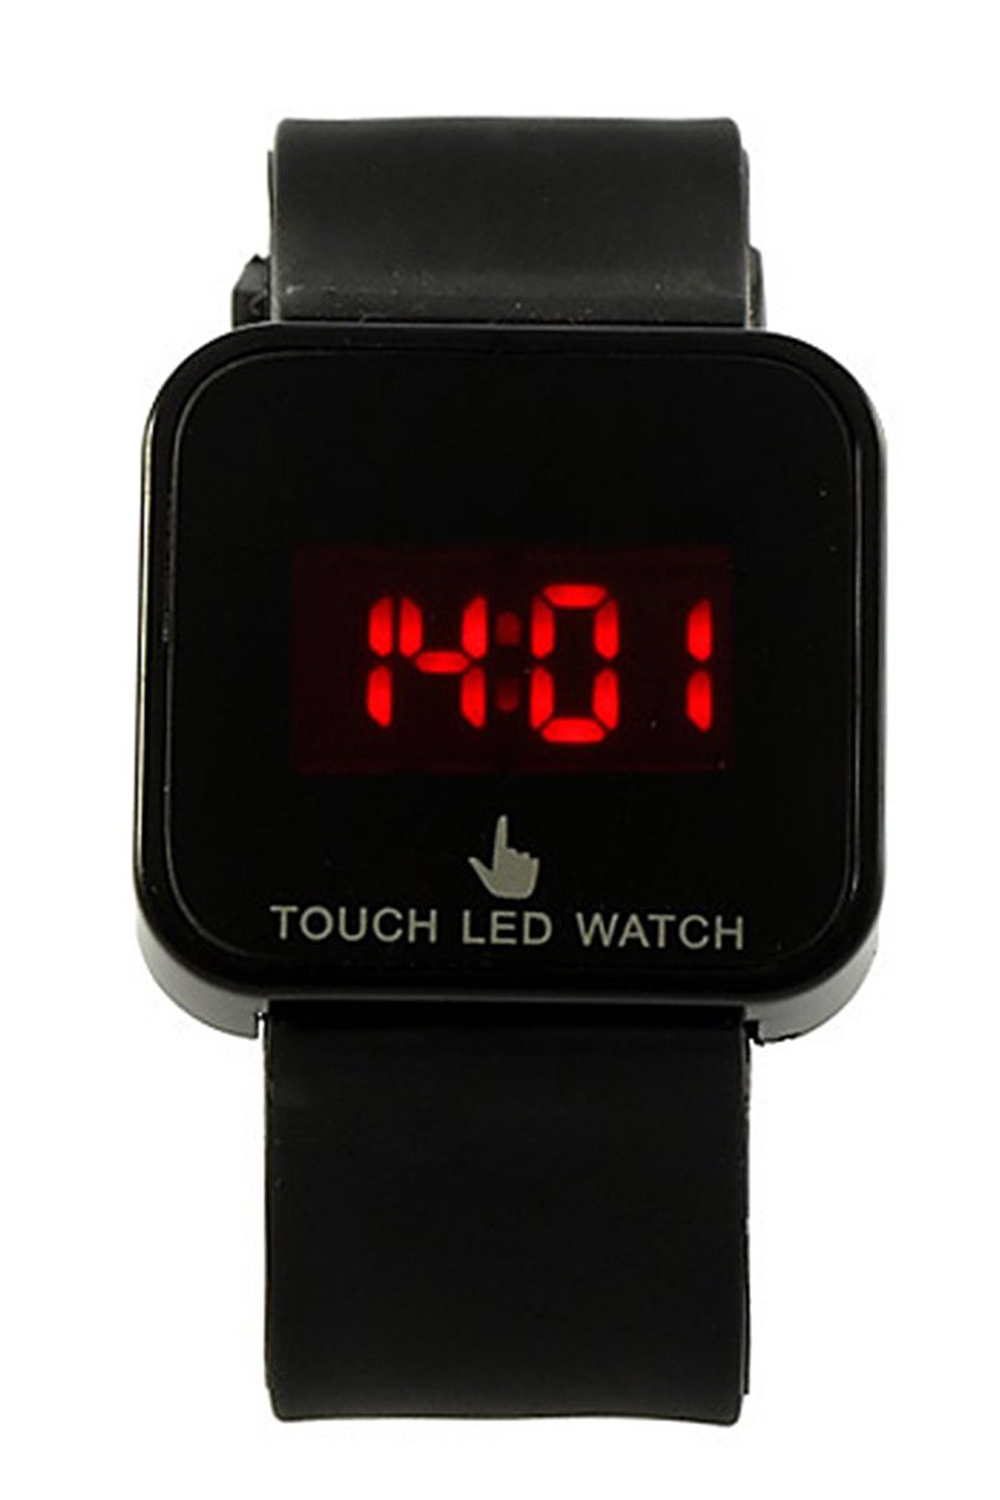 led watch black touch - photo #10